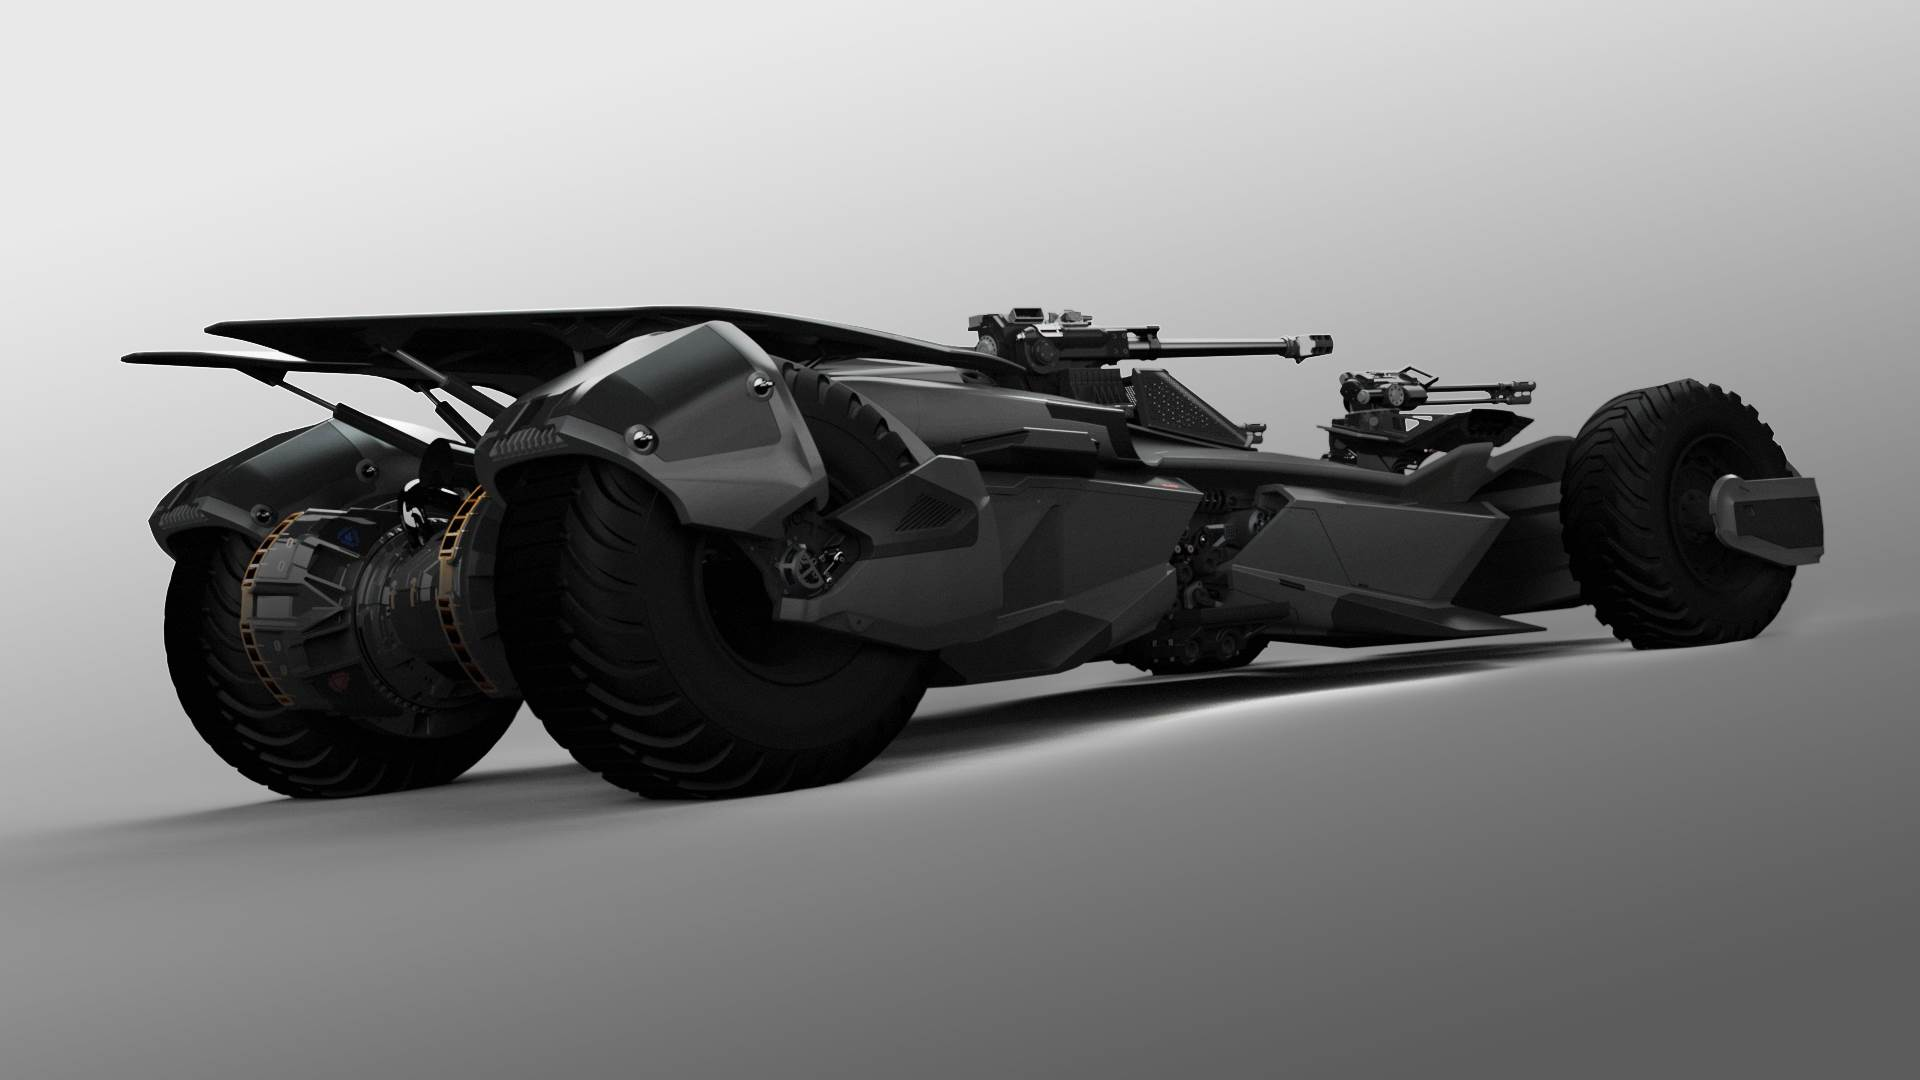 planetsoftware_solidworks_world_2018_batmobile2.jpg